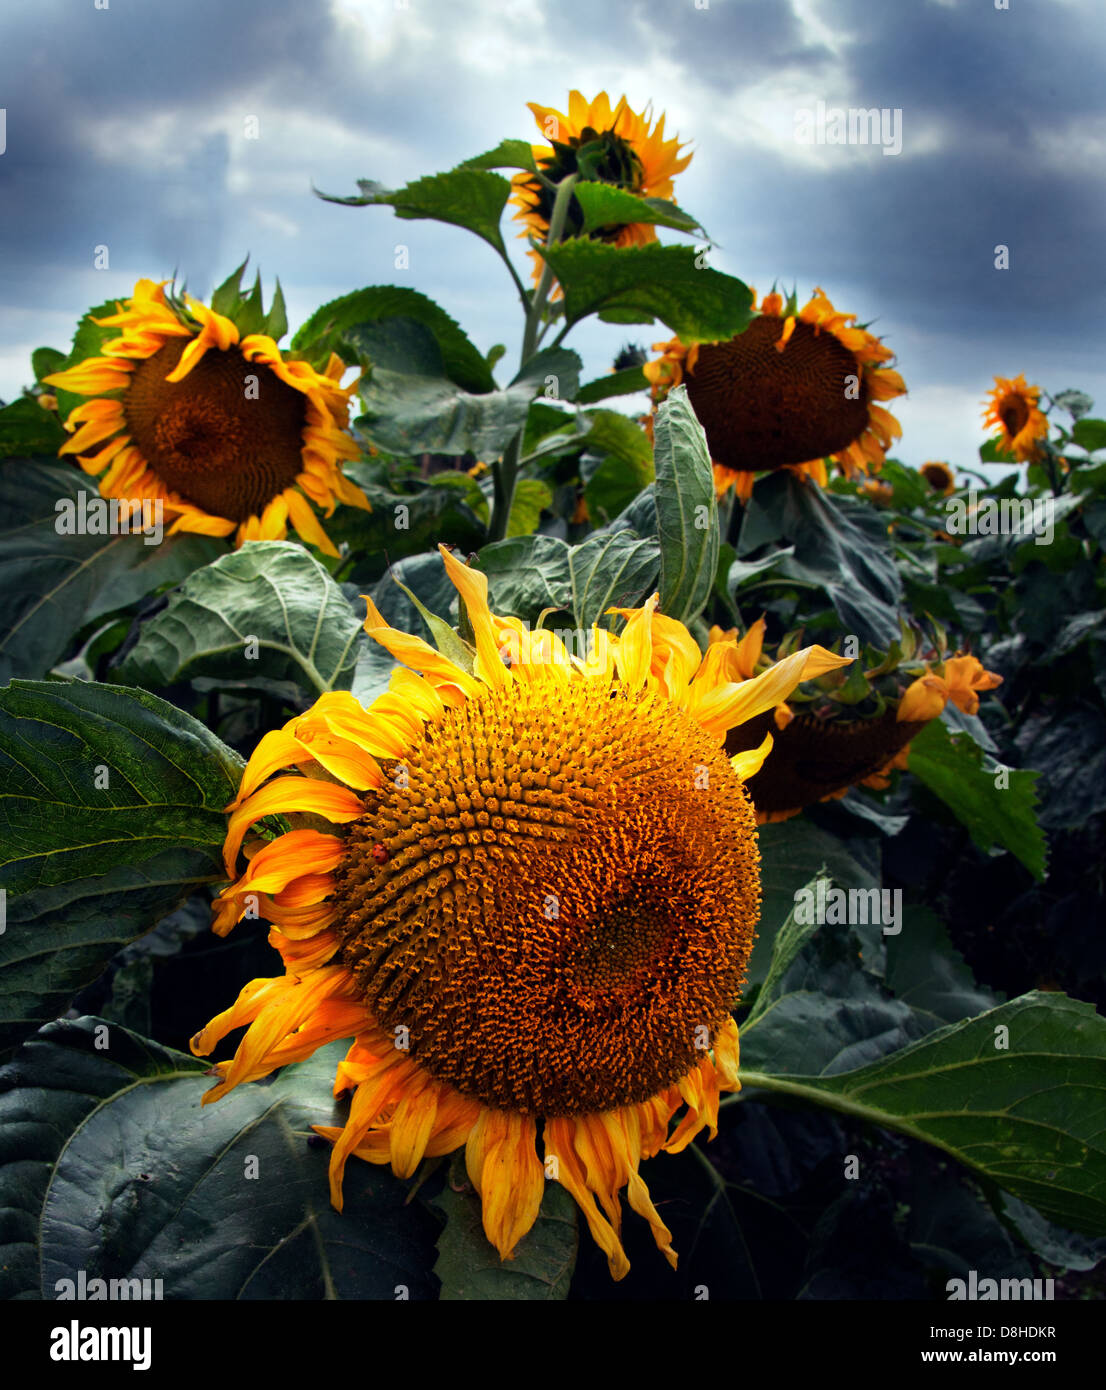 Orange sunflowers in a field with a moody gray sky behind - Stock Image